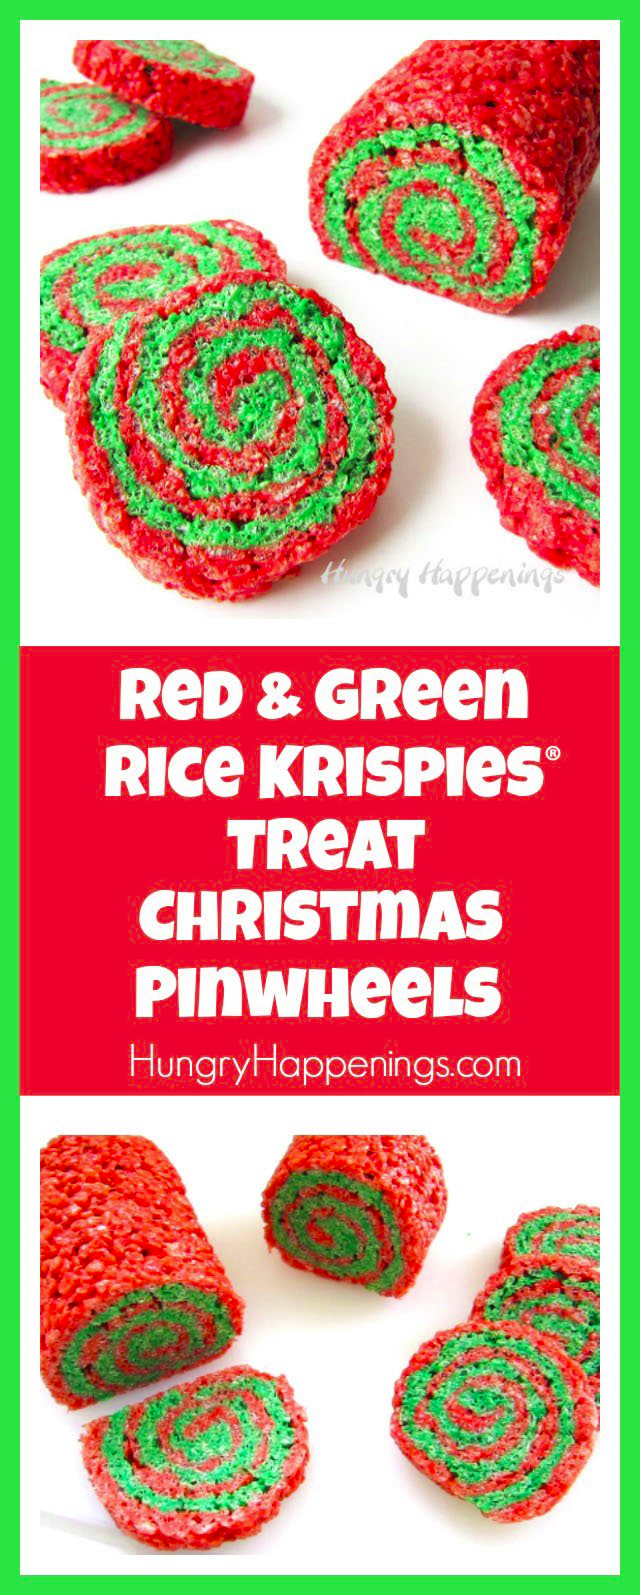 Red and Green Rice Krispies® Treat Christmas Pinwheels #ricekrispiestreats